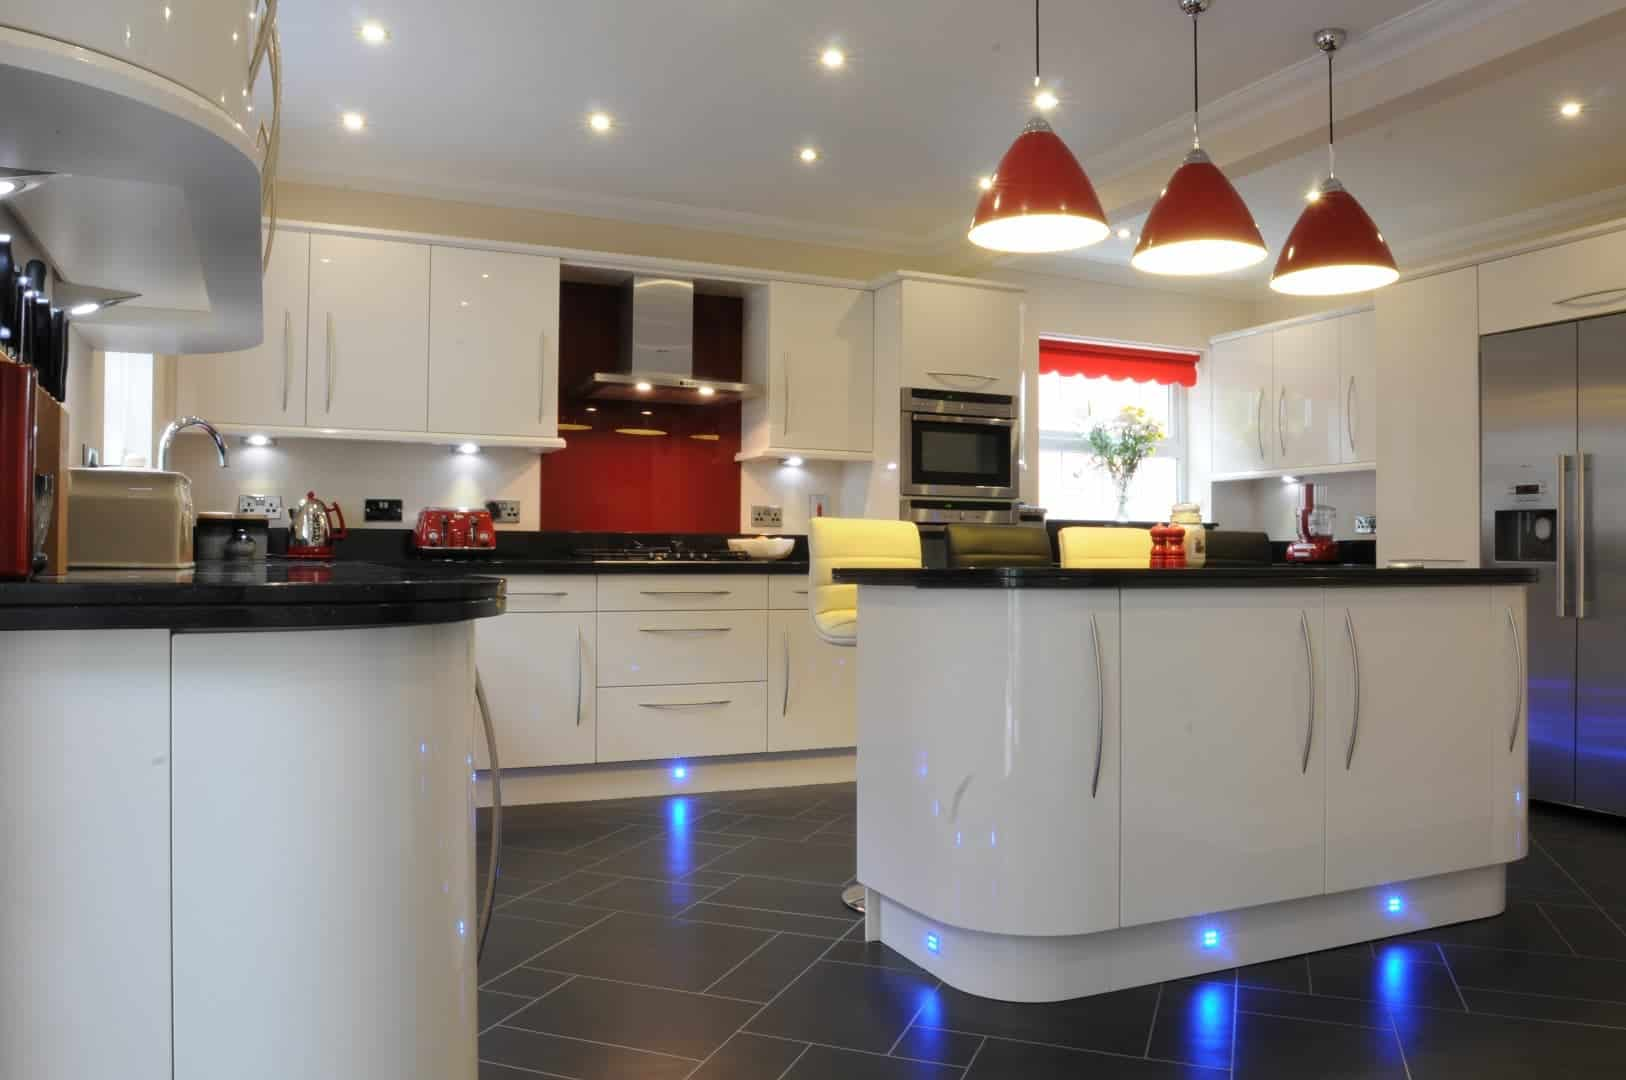 Modern kitchen and lighting